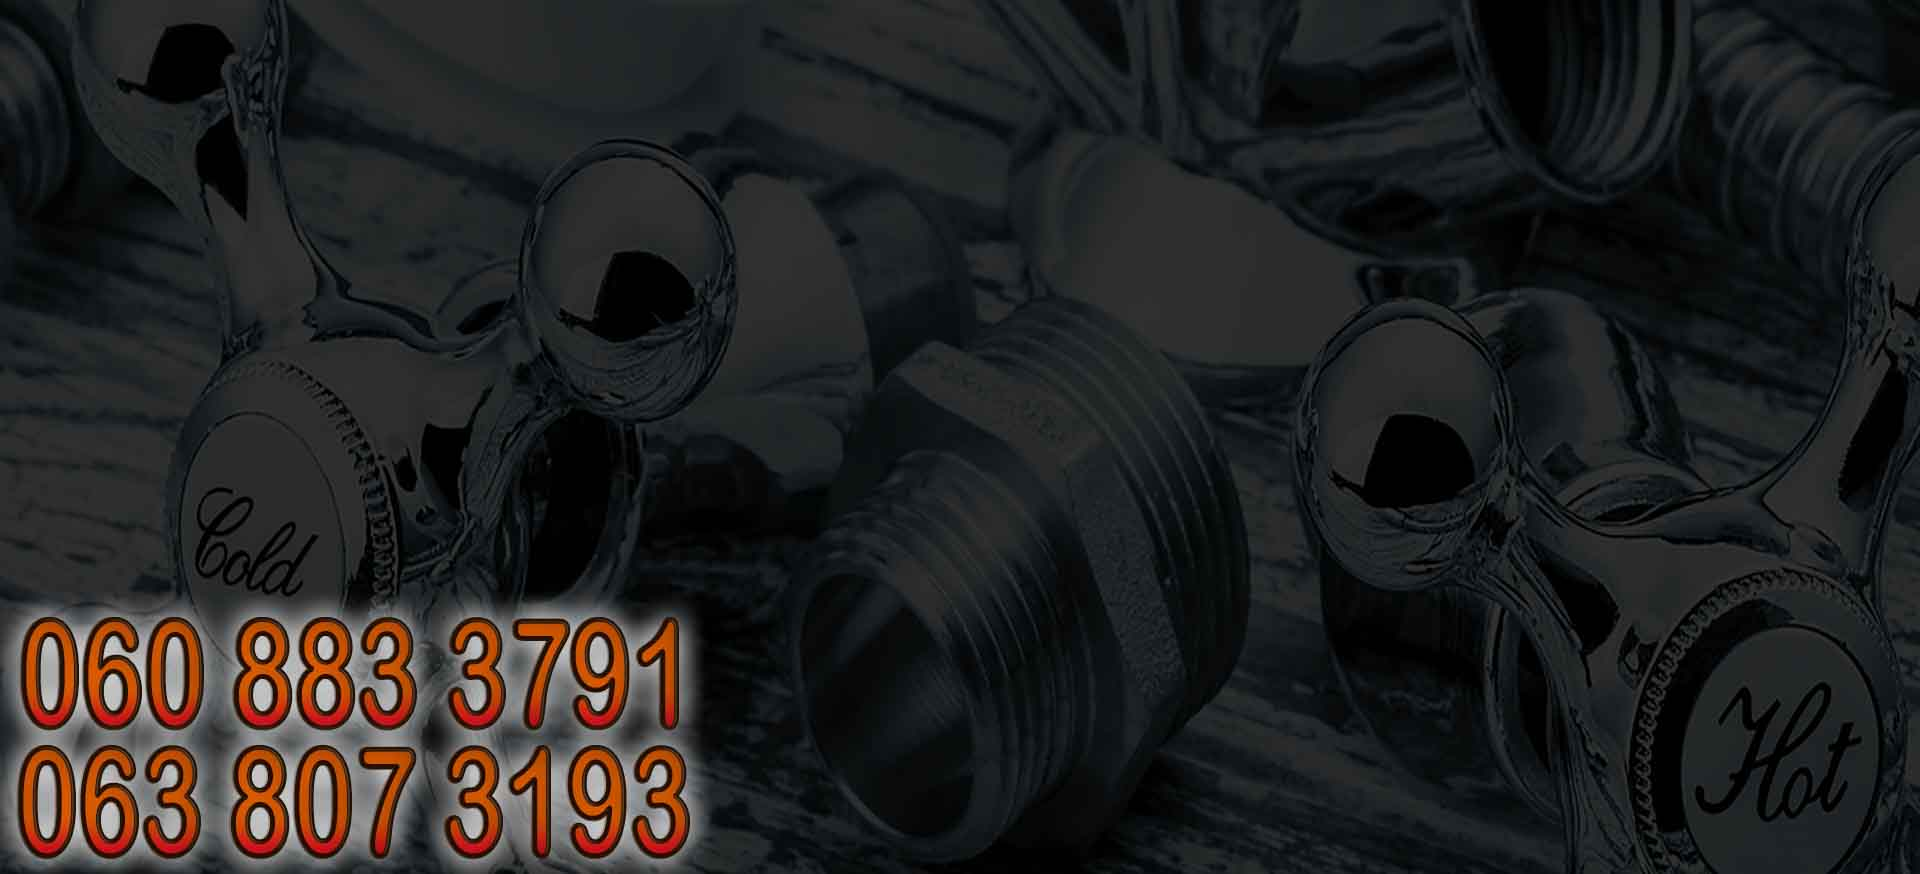 This is the Header image for 24/7 Benoni West Plumbers.